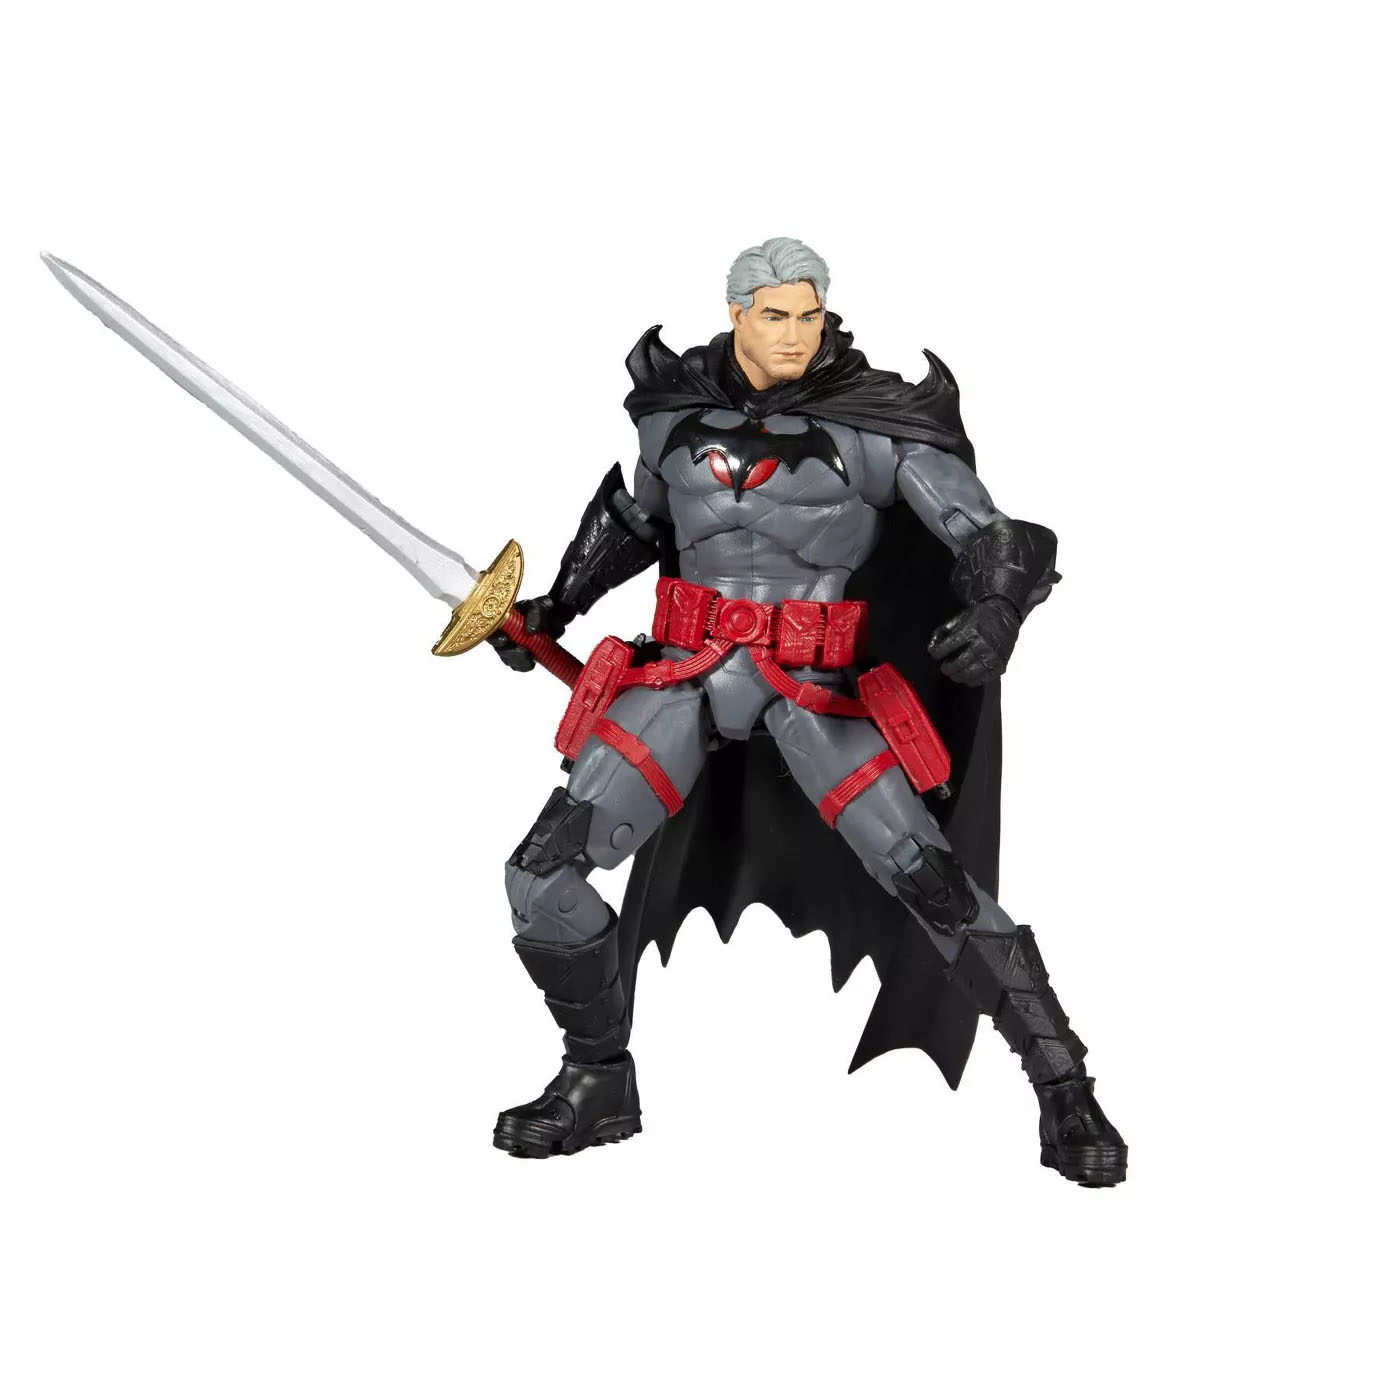 DC Multiverse Flashpoint Batman Unmasked 006